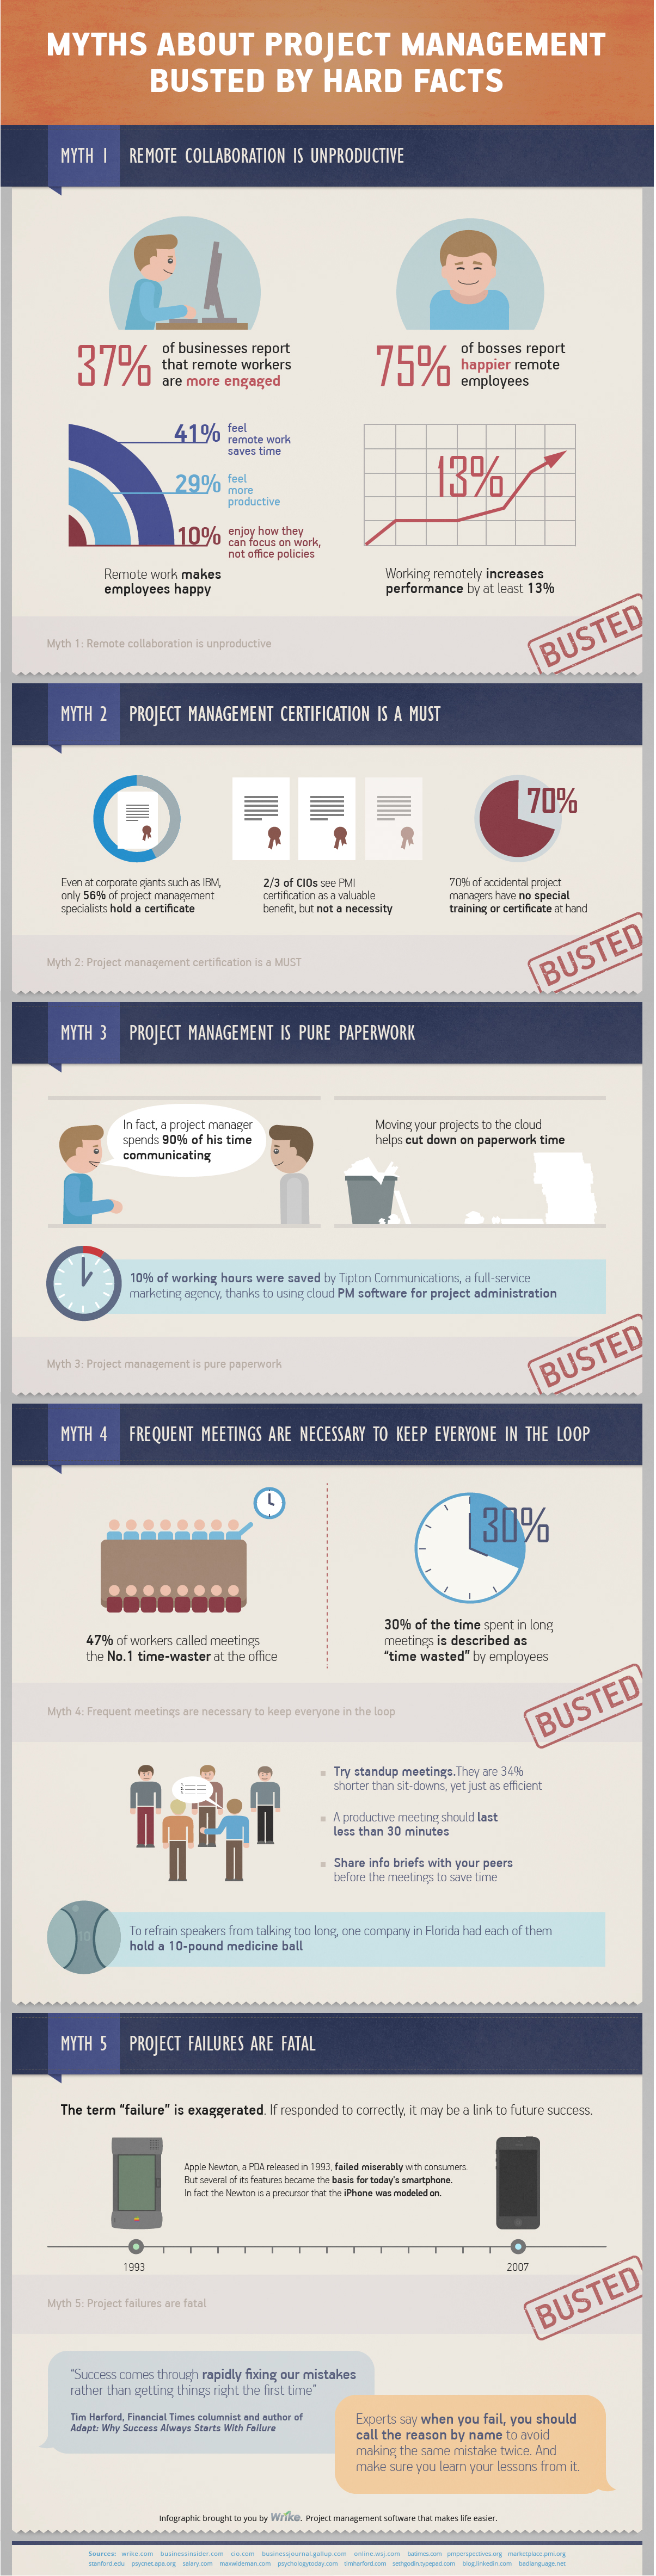 Wrike Infographic Project Management Myths Busted full1 - Myths About Project Management Busted By Hard Facts